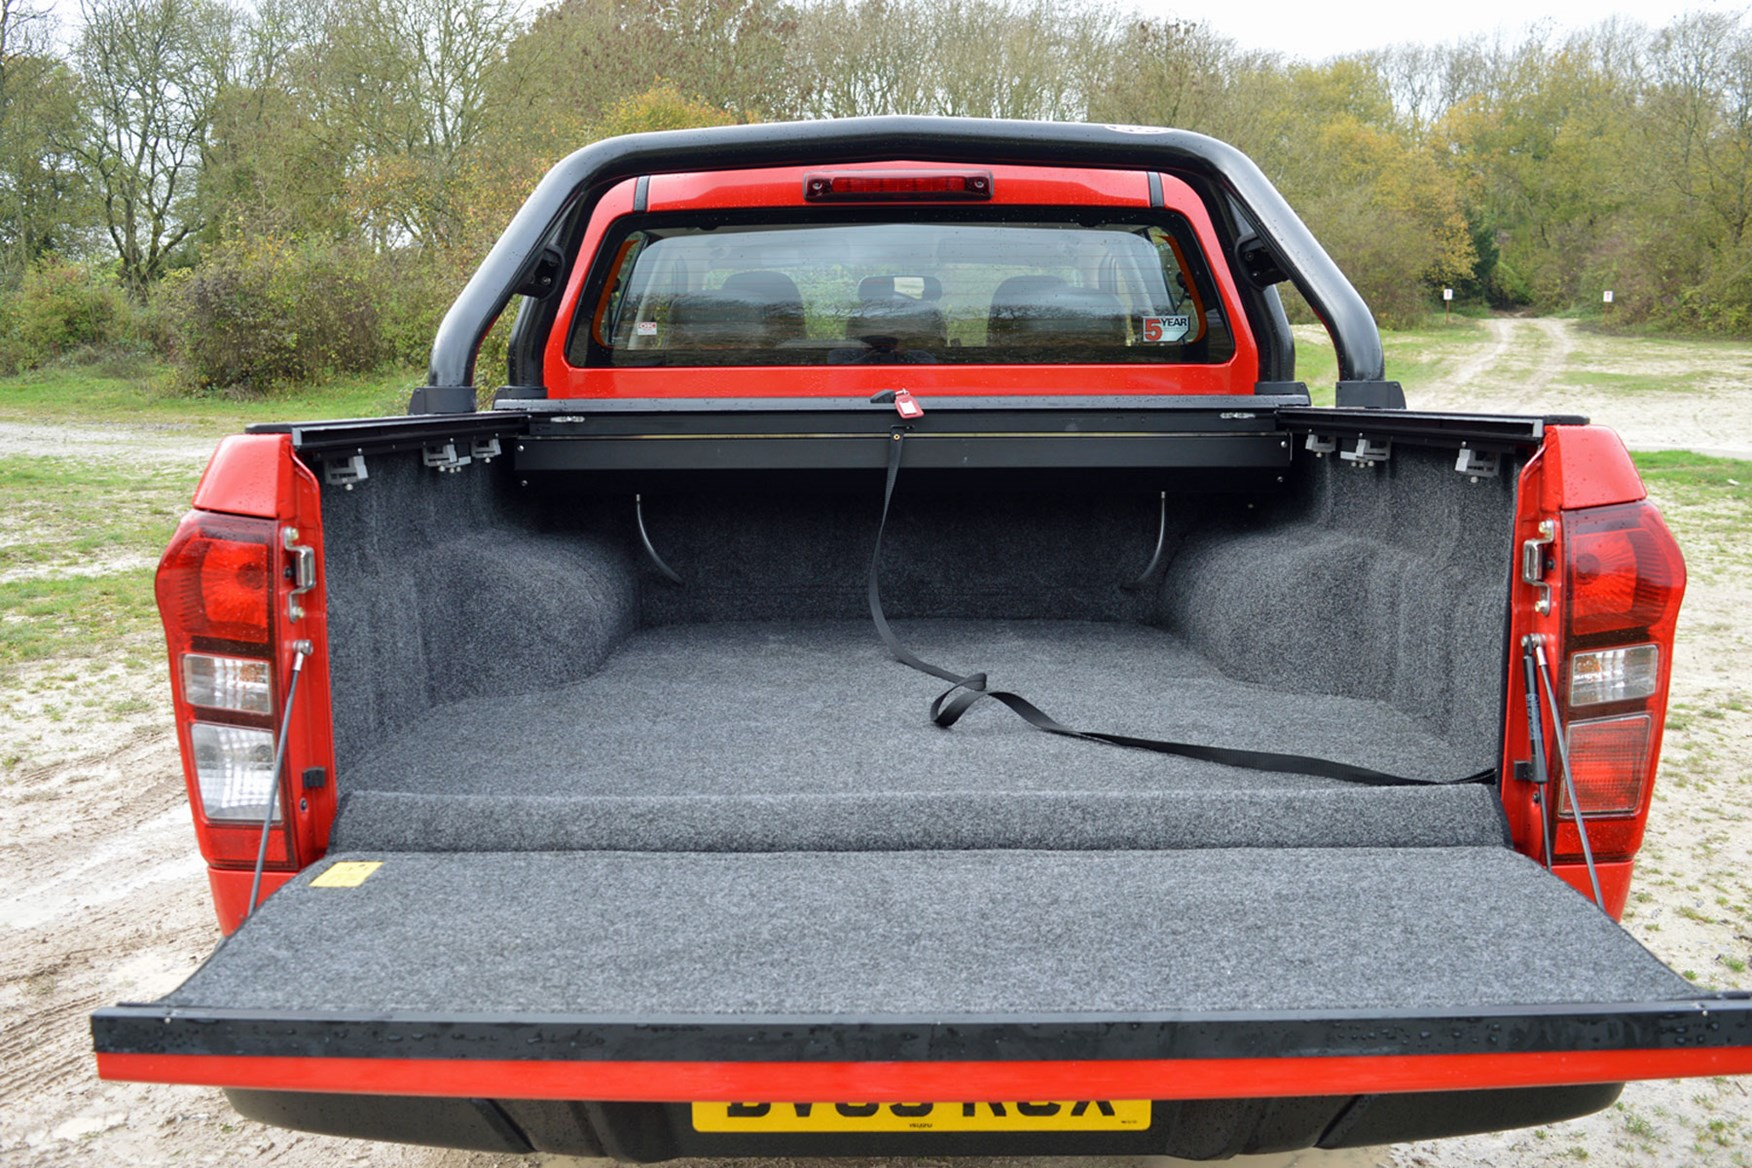 Isuzu D-Max Fury 2.5 review - load area with bed rug